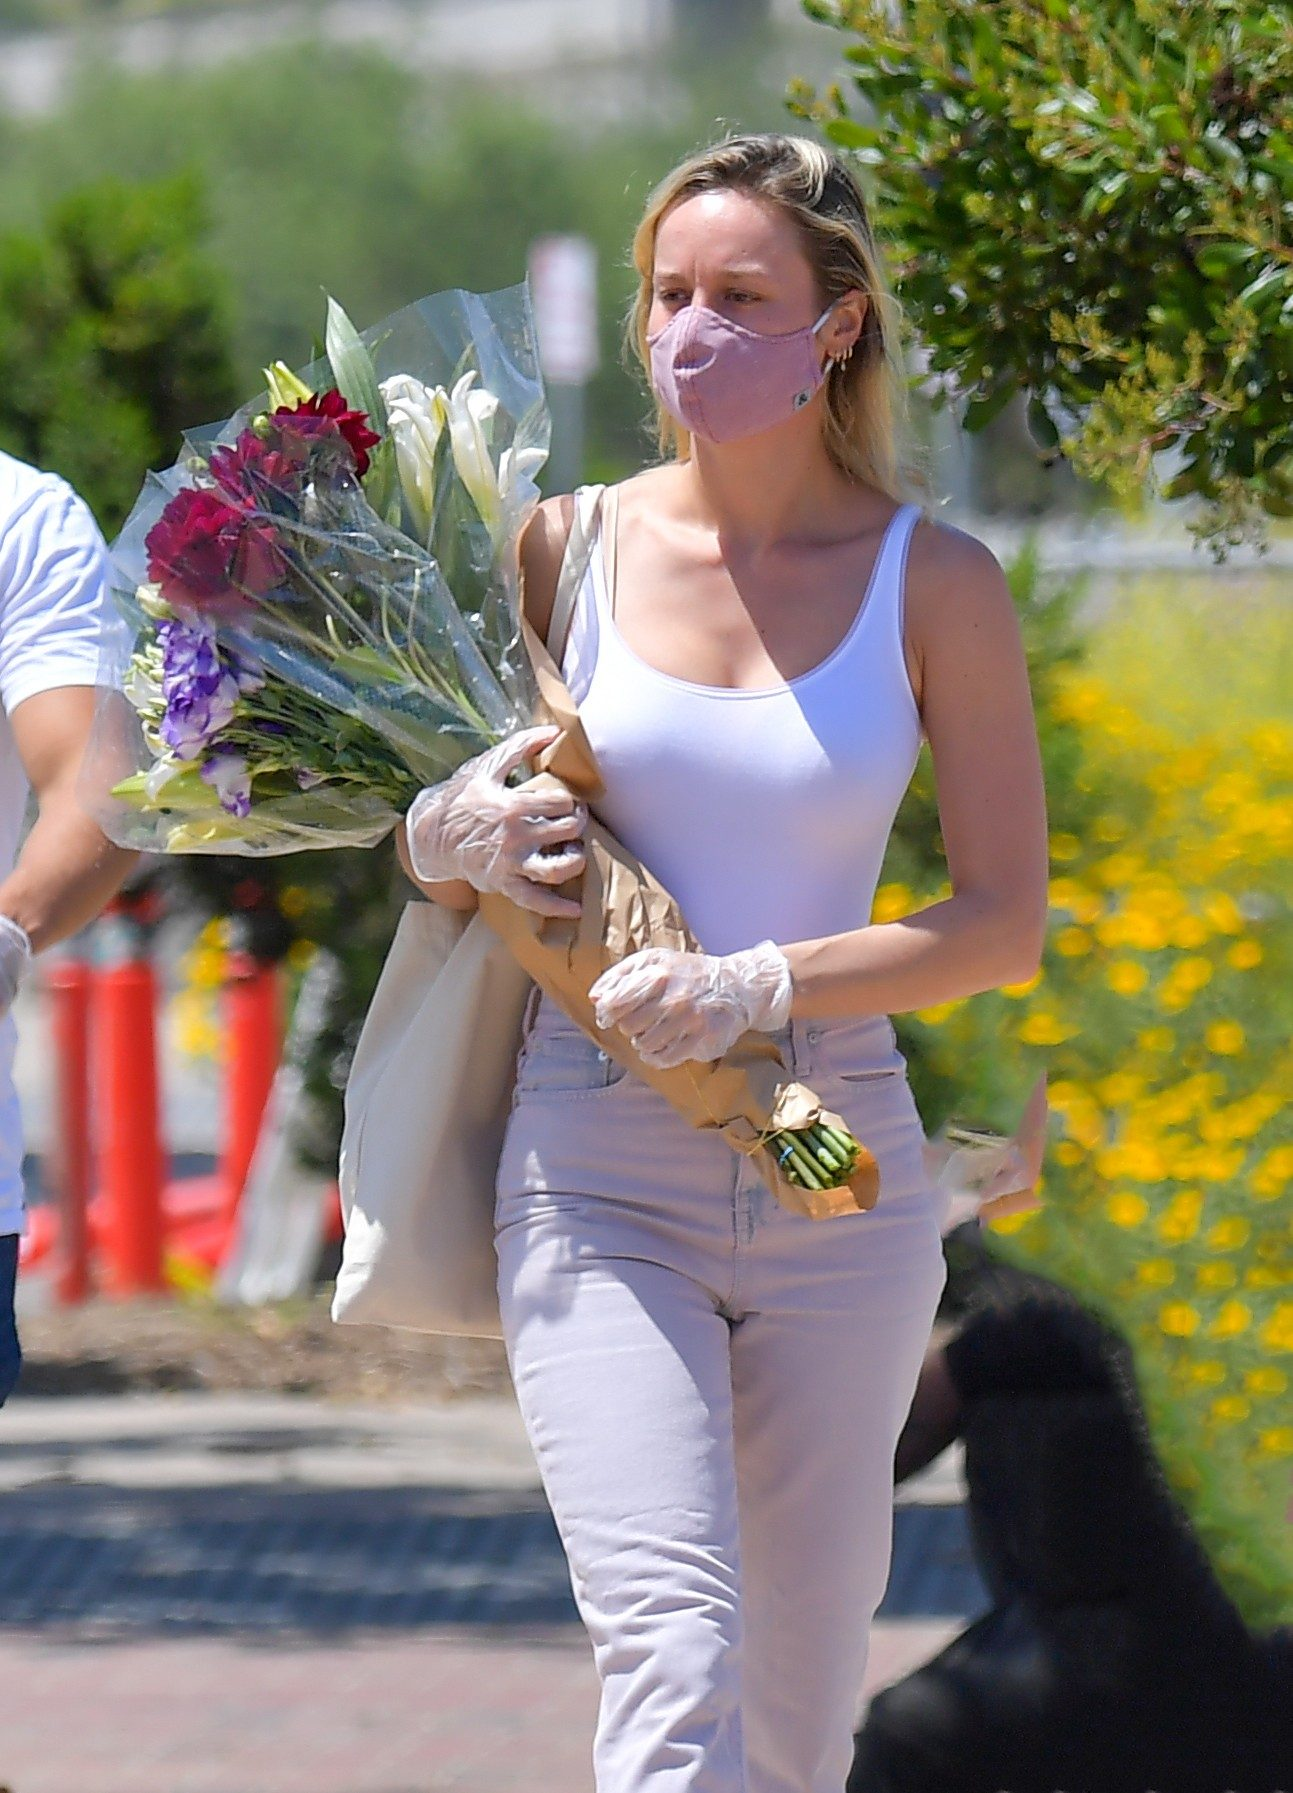 Brie Larson Pokies at a Farmer's Market in Los Angeles